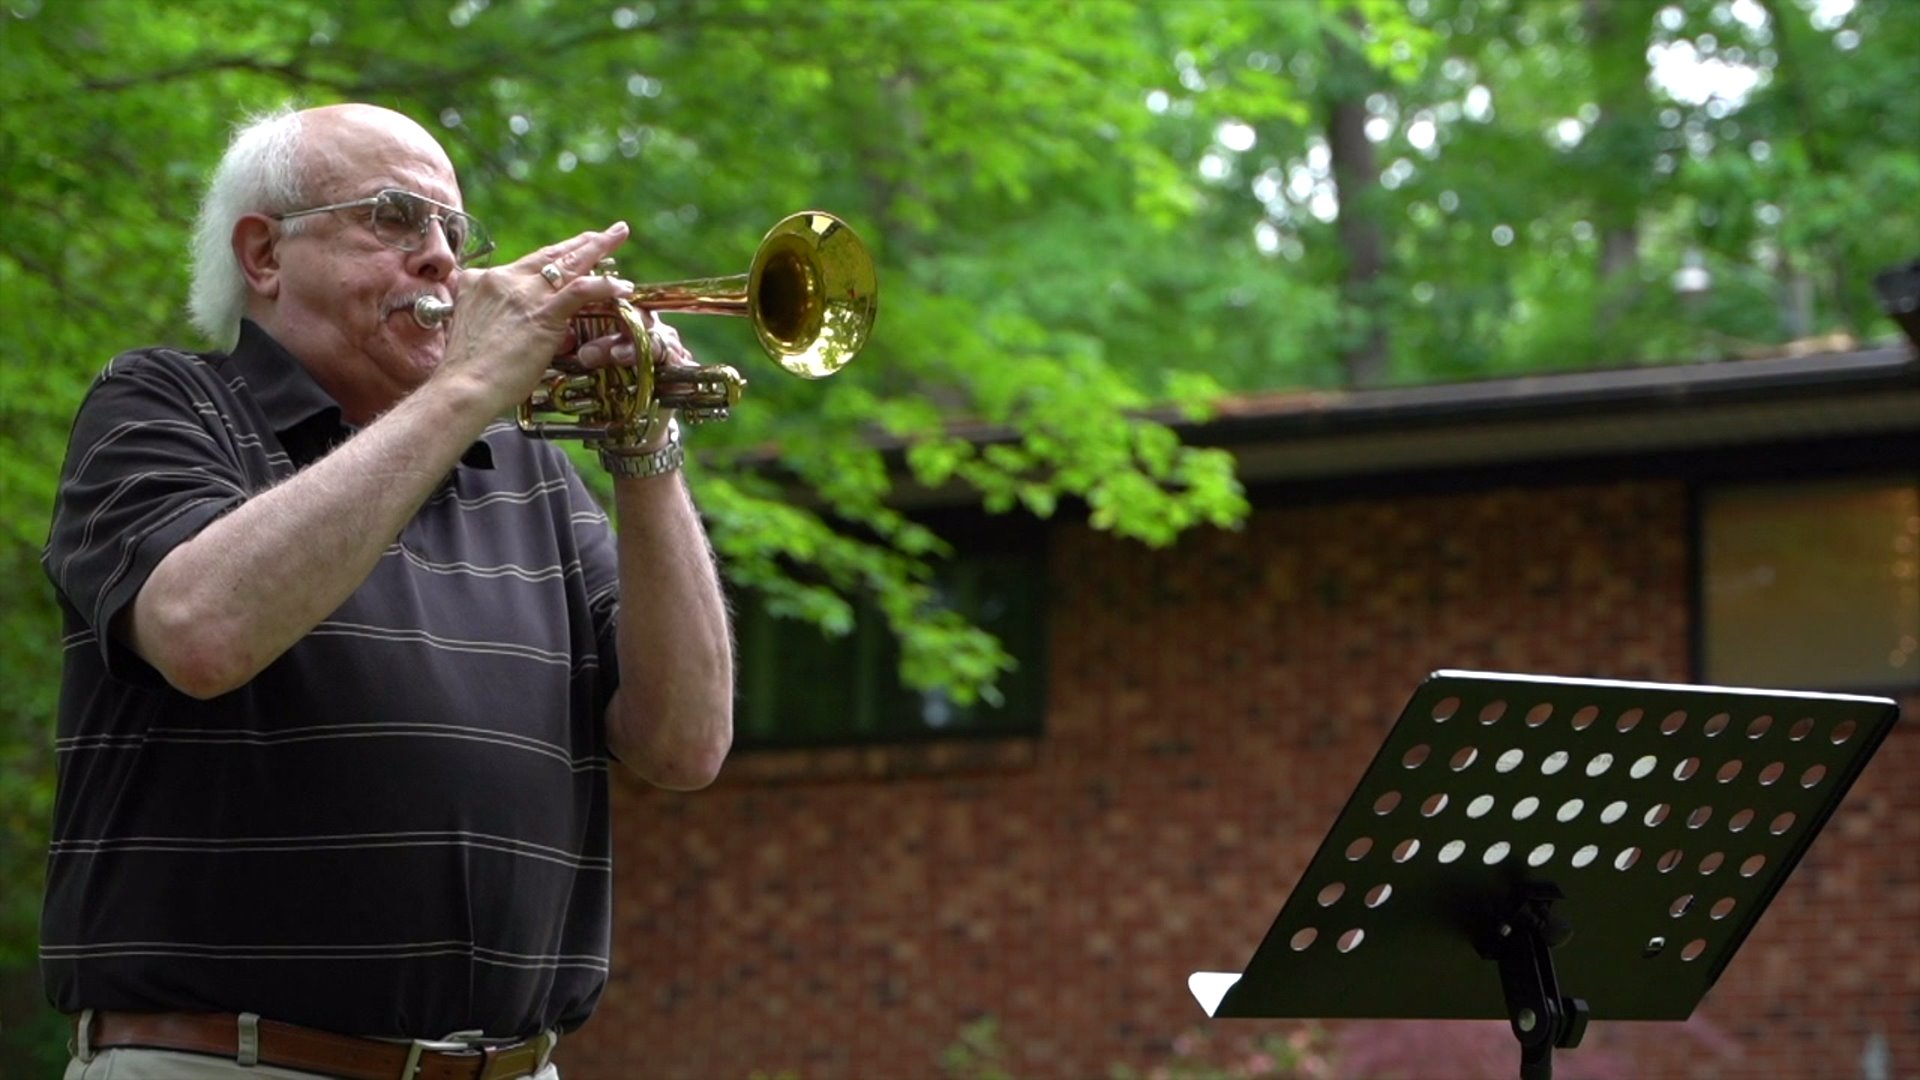 Retired Davidson County teacher brings live music to his neighbors with trumpet shows